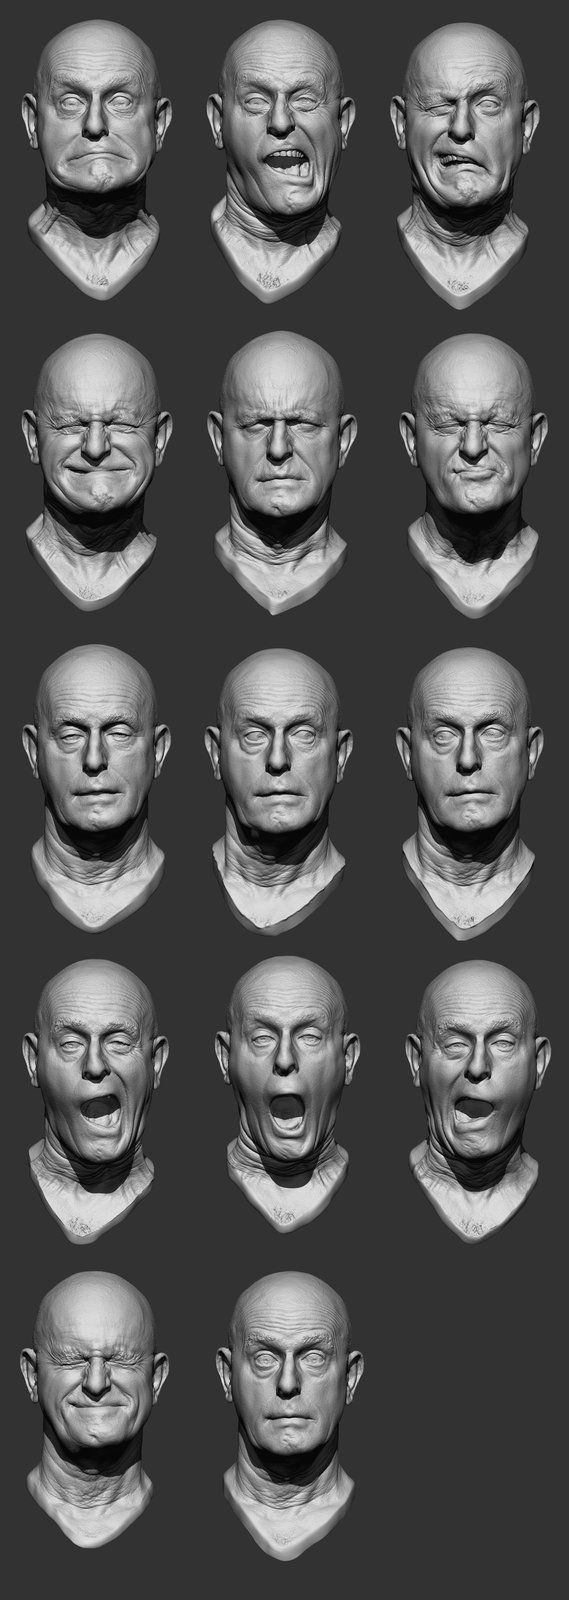 Truck driver expressions, Chris Rawlinson on ArtStation at http://www.artstation.com/artwork/truck-driver-expressions